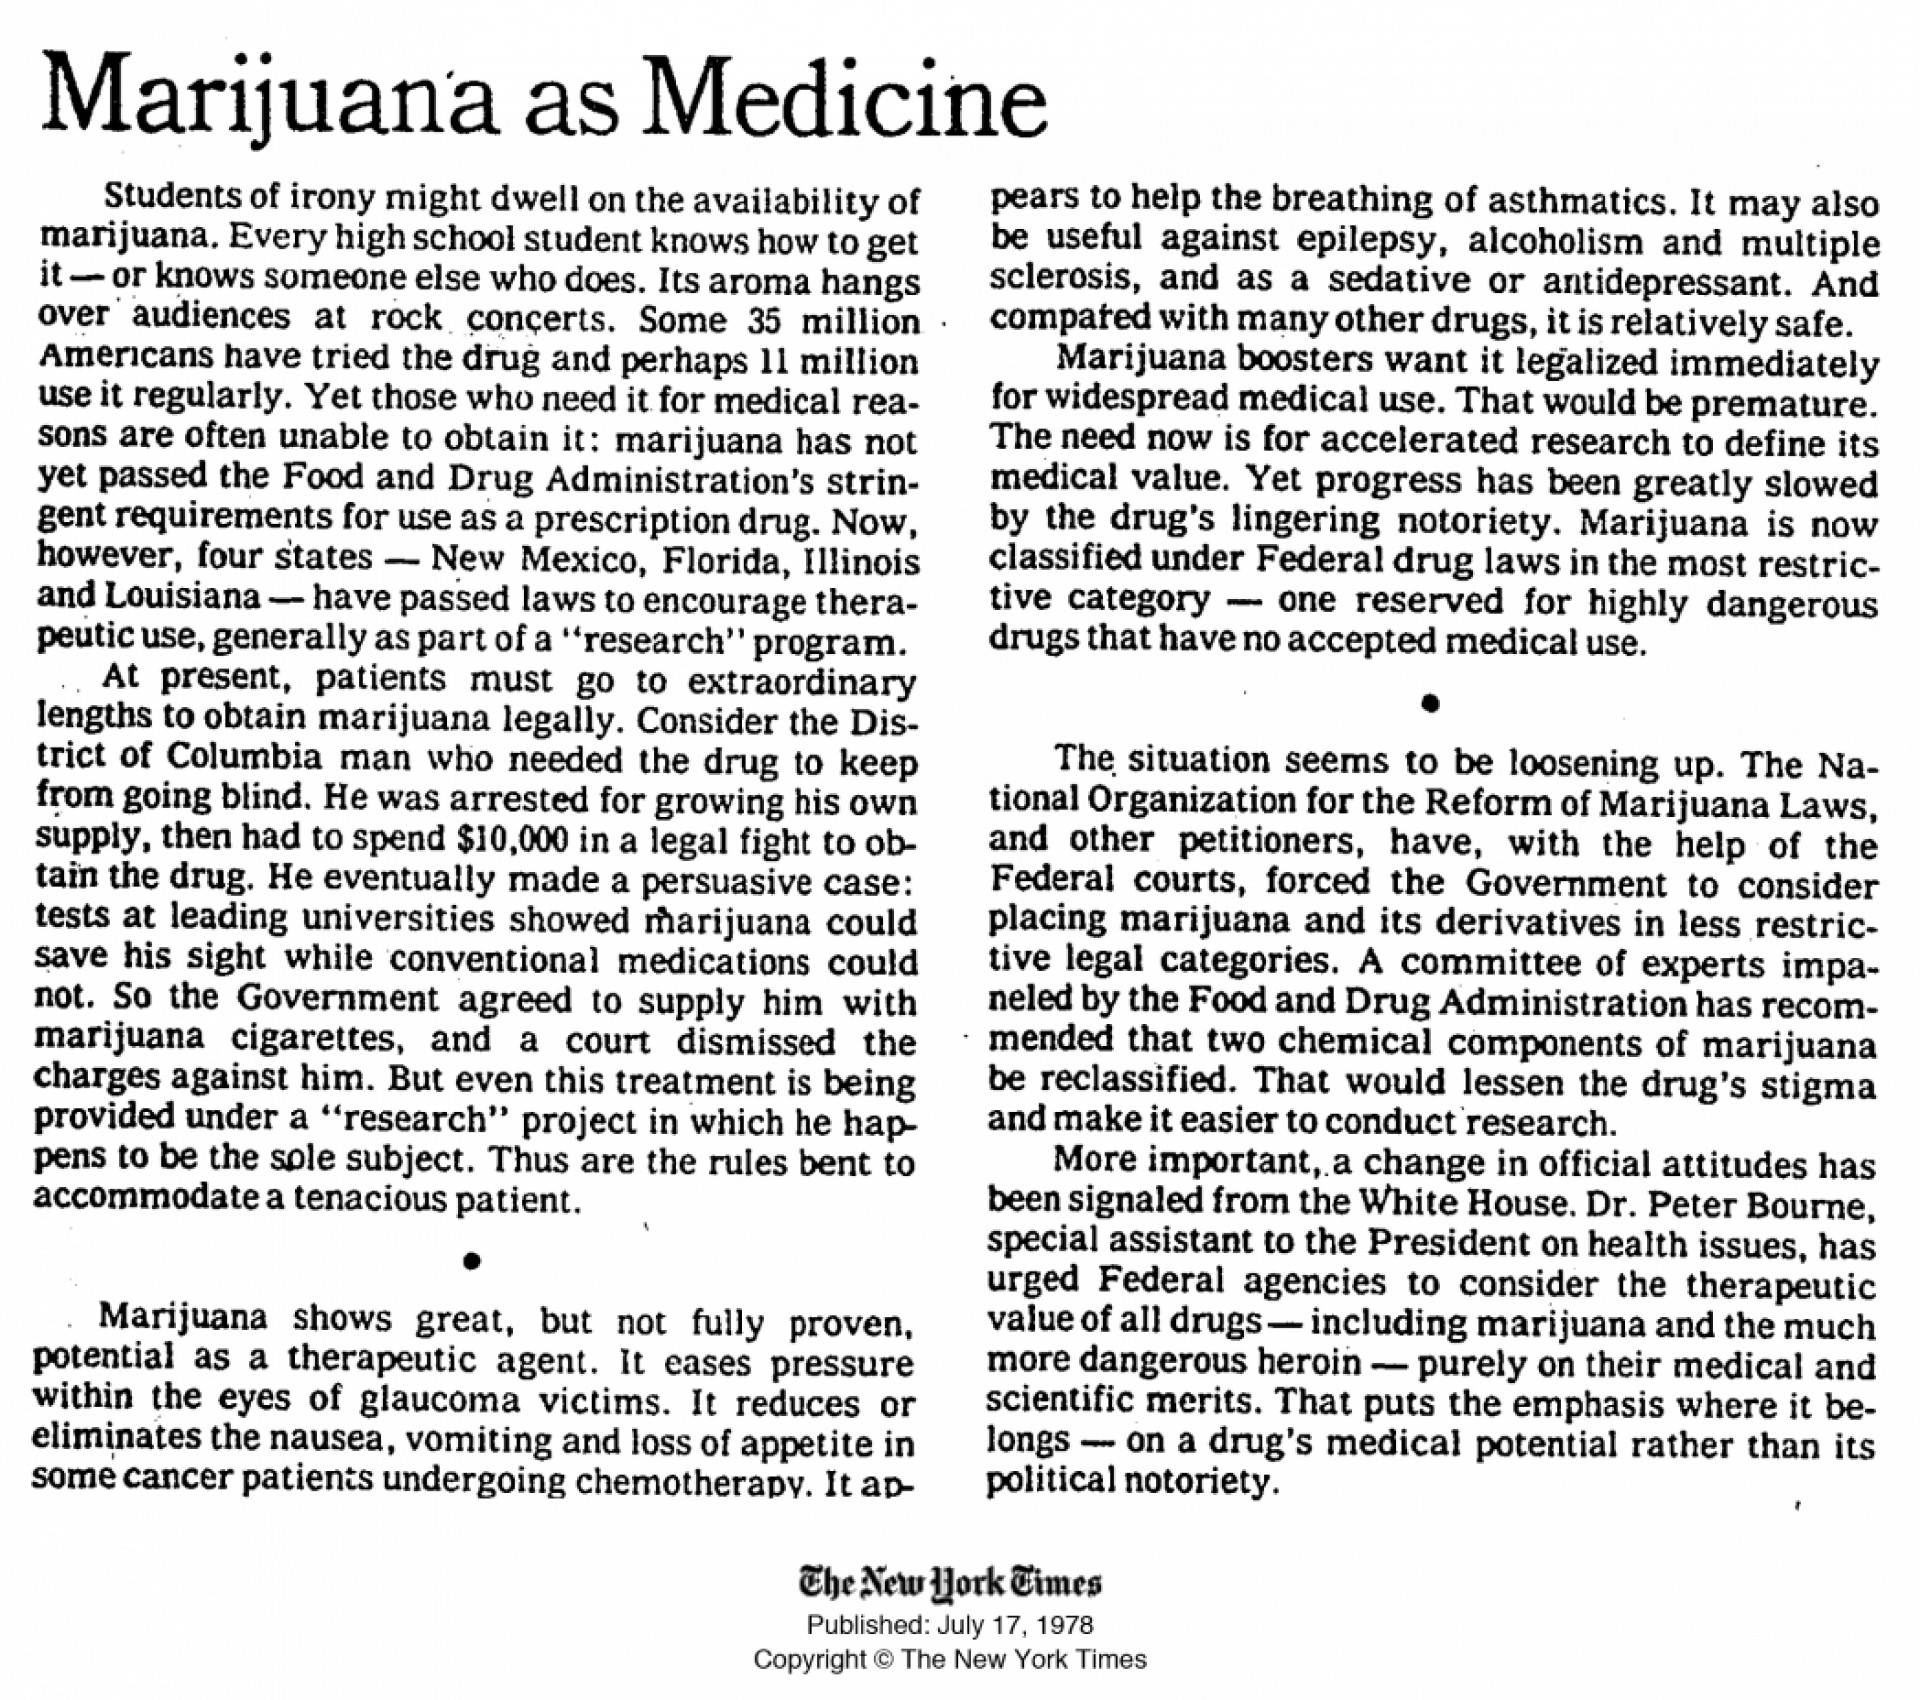 002 Medical Marijuana Essay Example Essays On Legalization Of Persuasive Outline High Time Medicine July Legalizing Argumentative Research Paper Wonderful Paperwork Michigan Prompt 1920